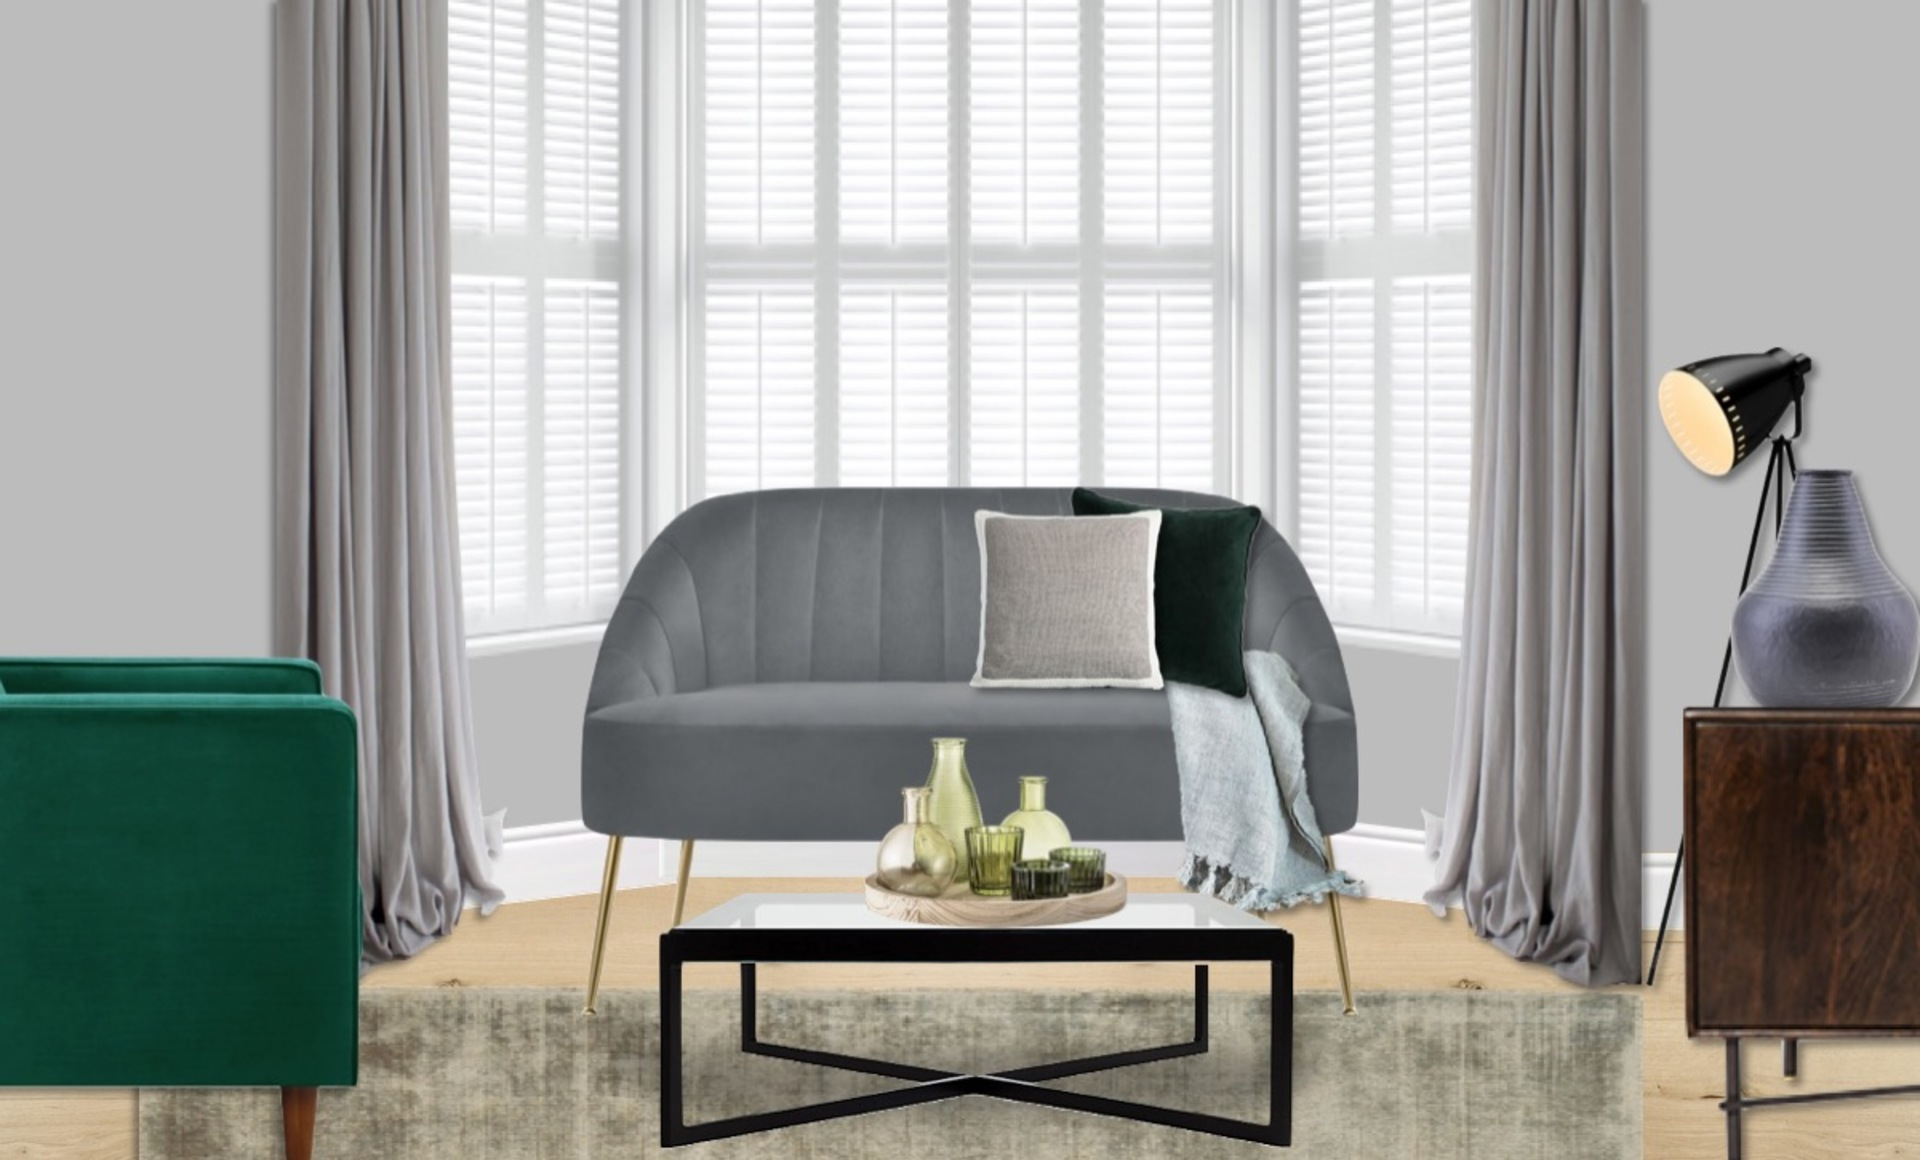 Bay window with modern velvet grey love seat with brass legs for a glamorous finish